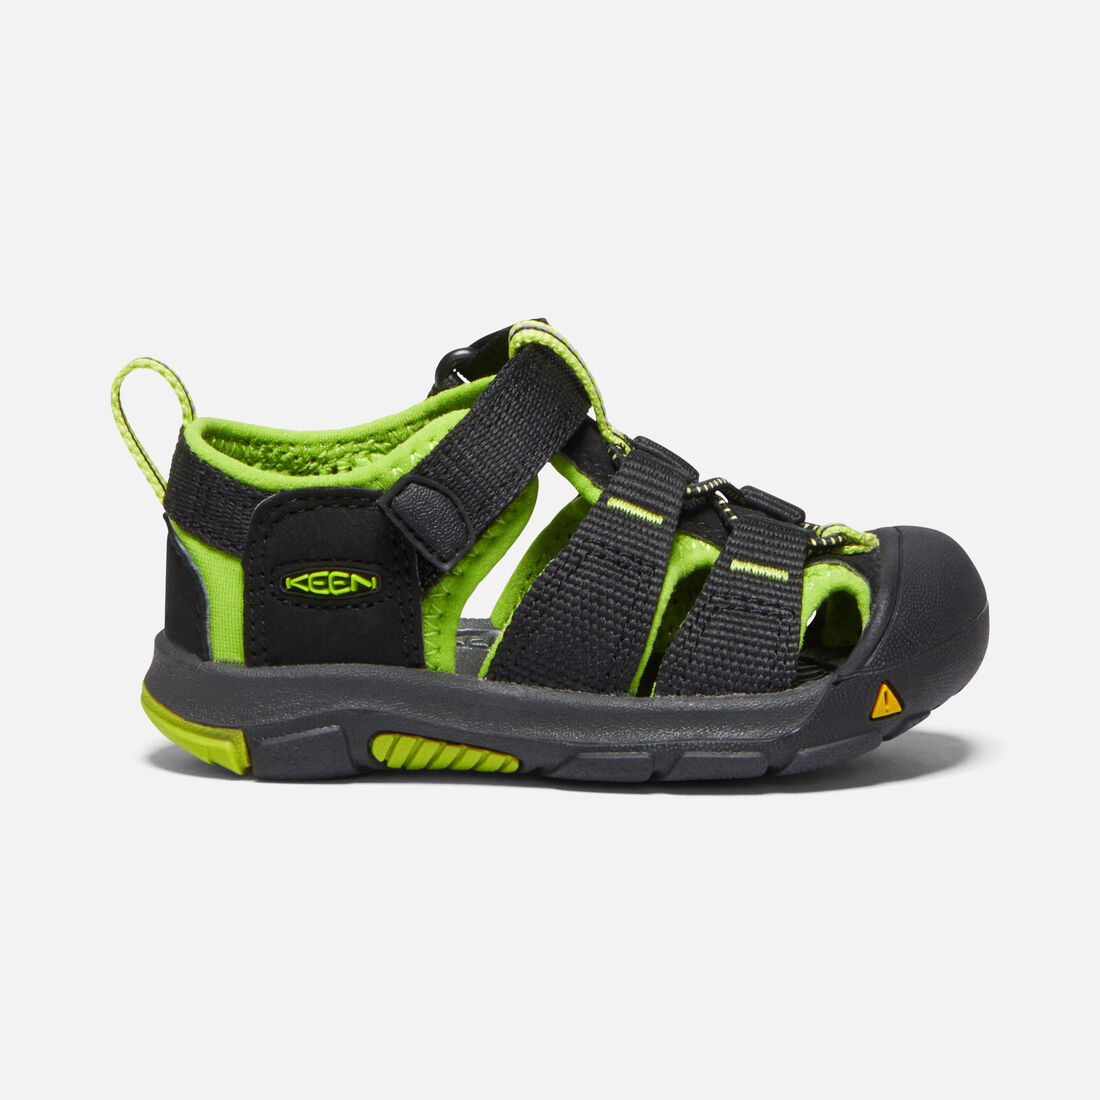 6acd0f1bf60 Toddlers' Newport H2 Sandals - Easy-On/Off | KEEN Footwear